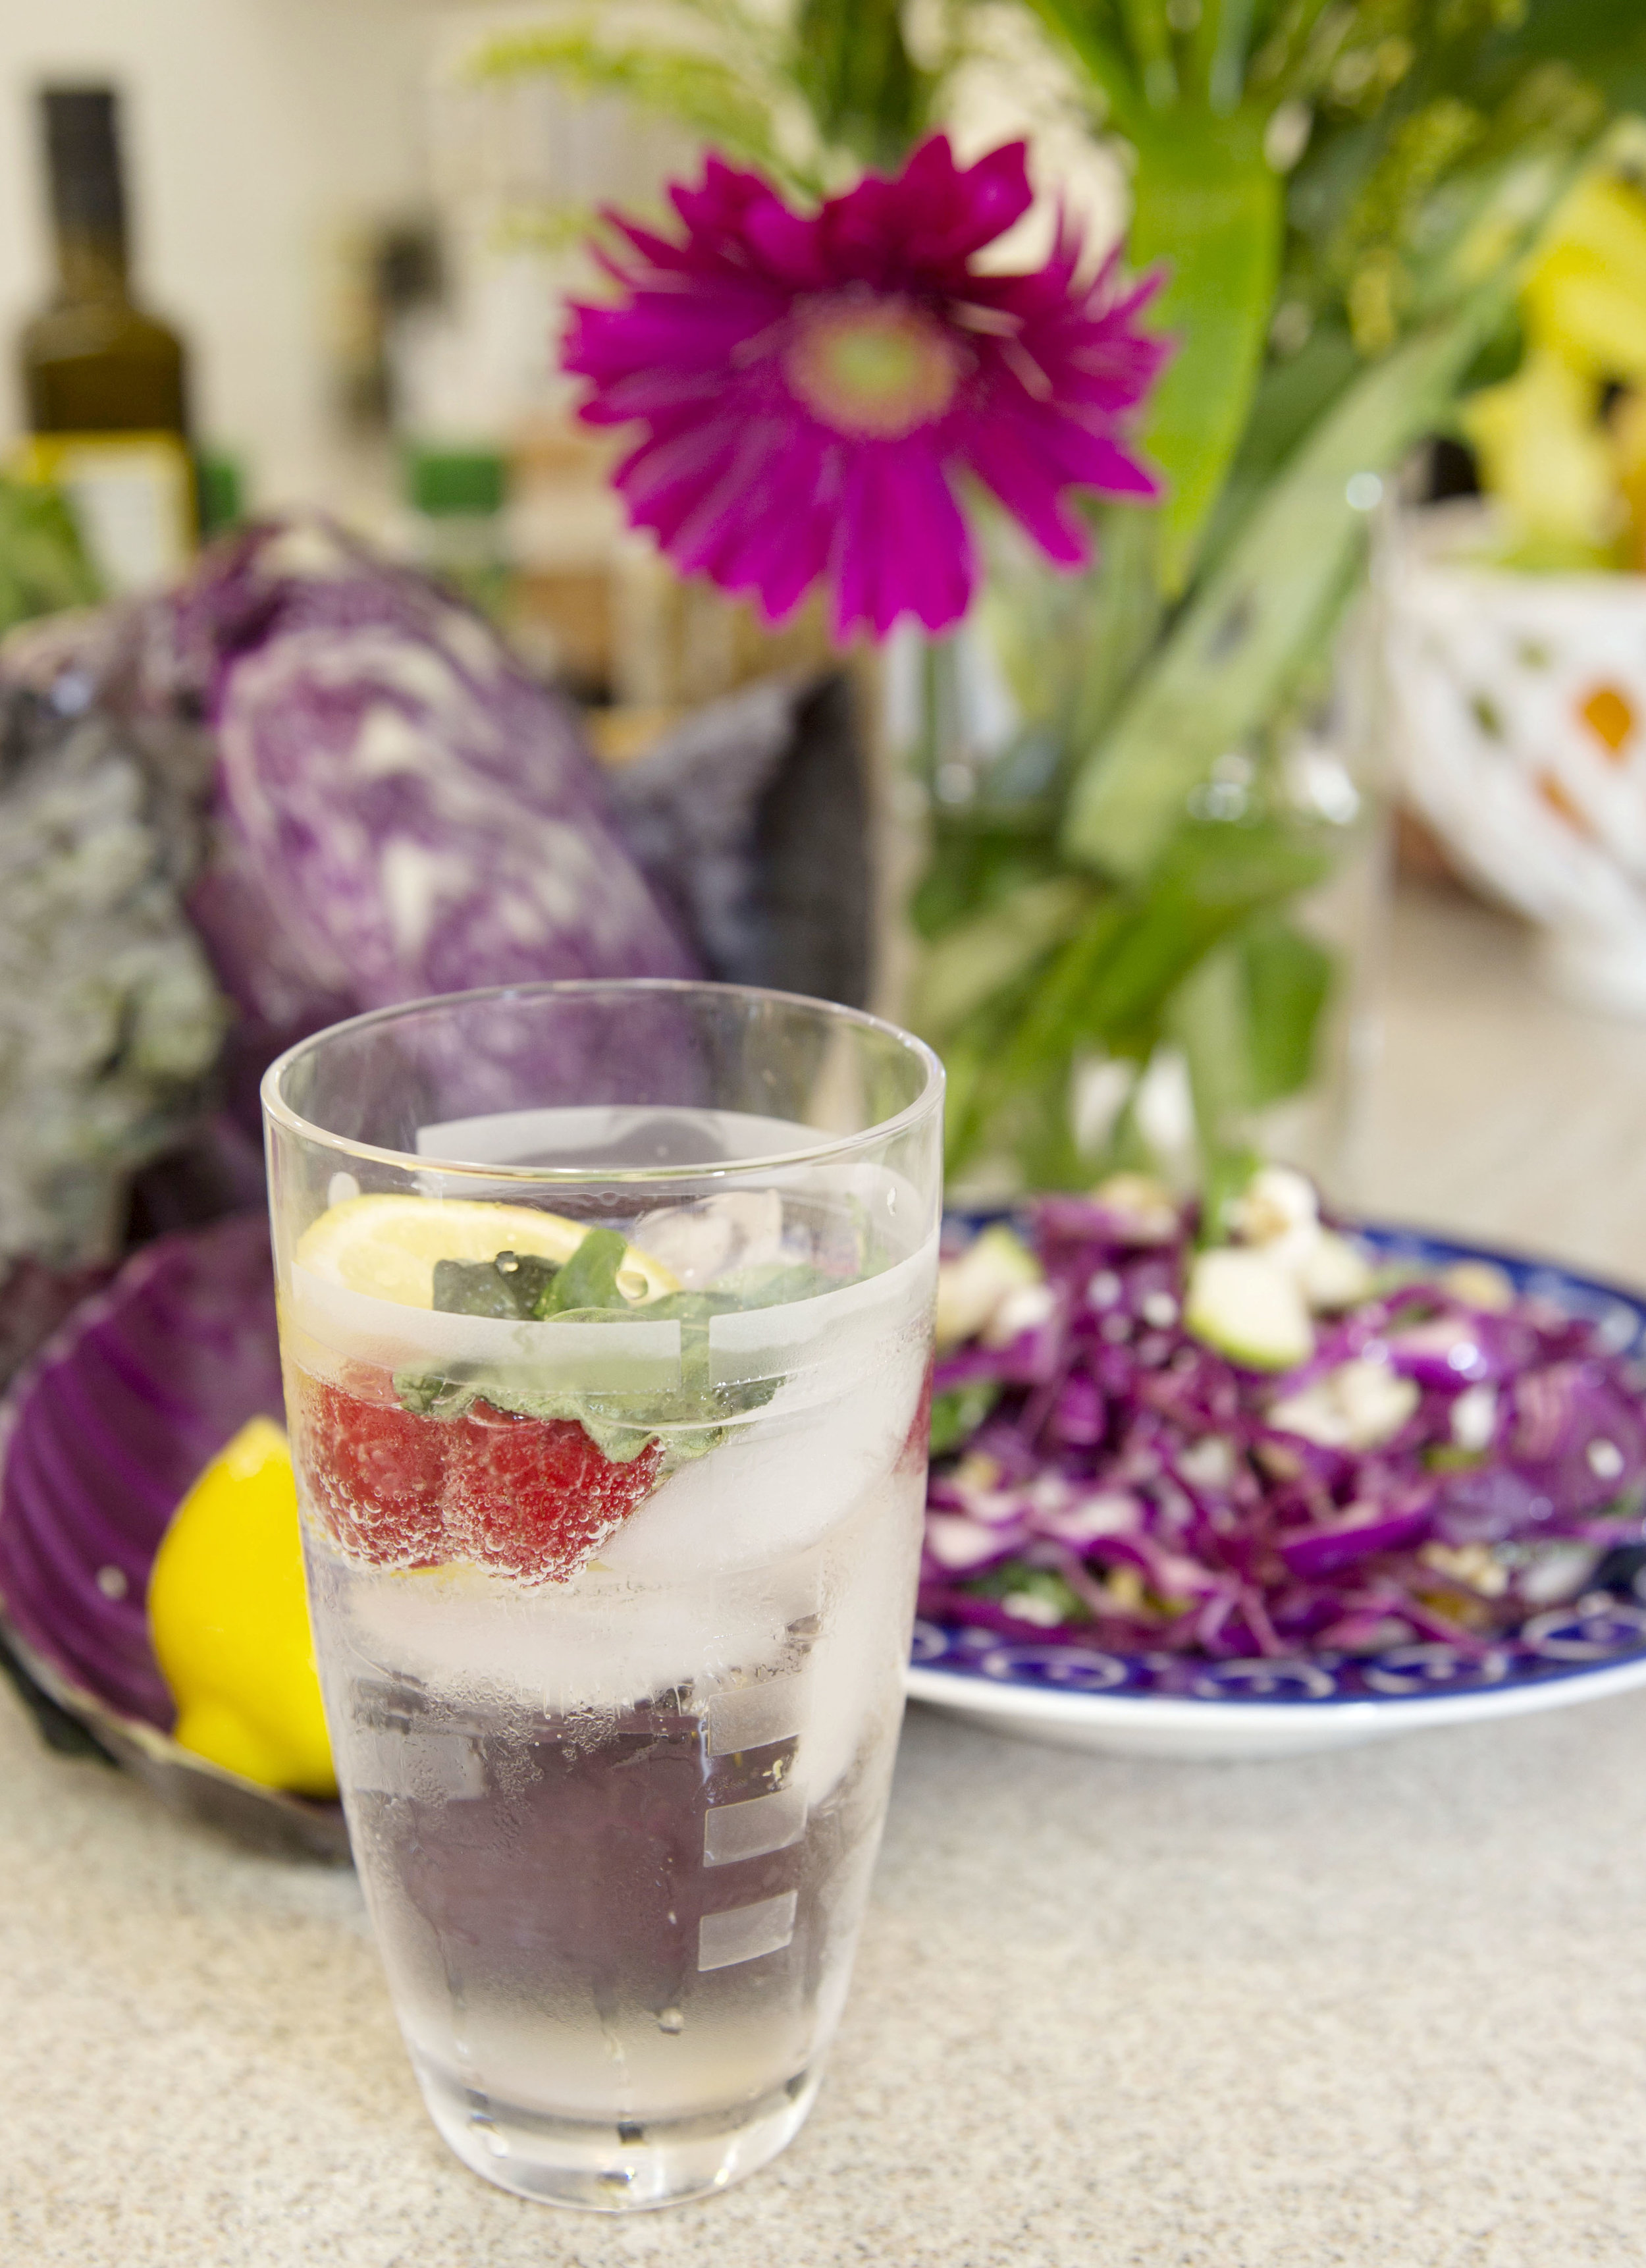 SPARKLING WATER WITH FRUIT 266A1774.jpg